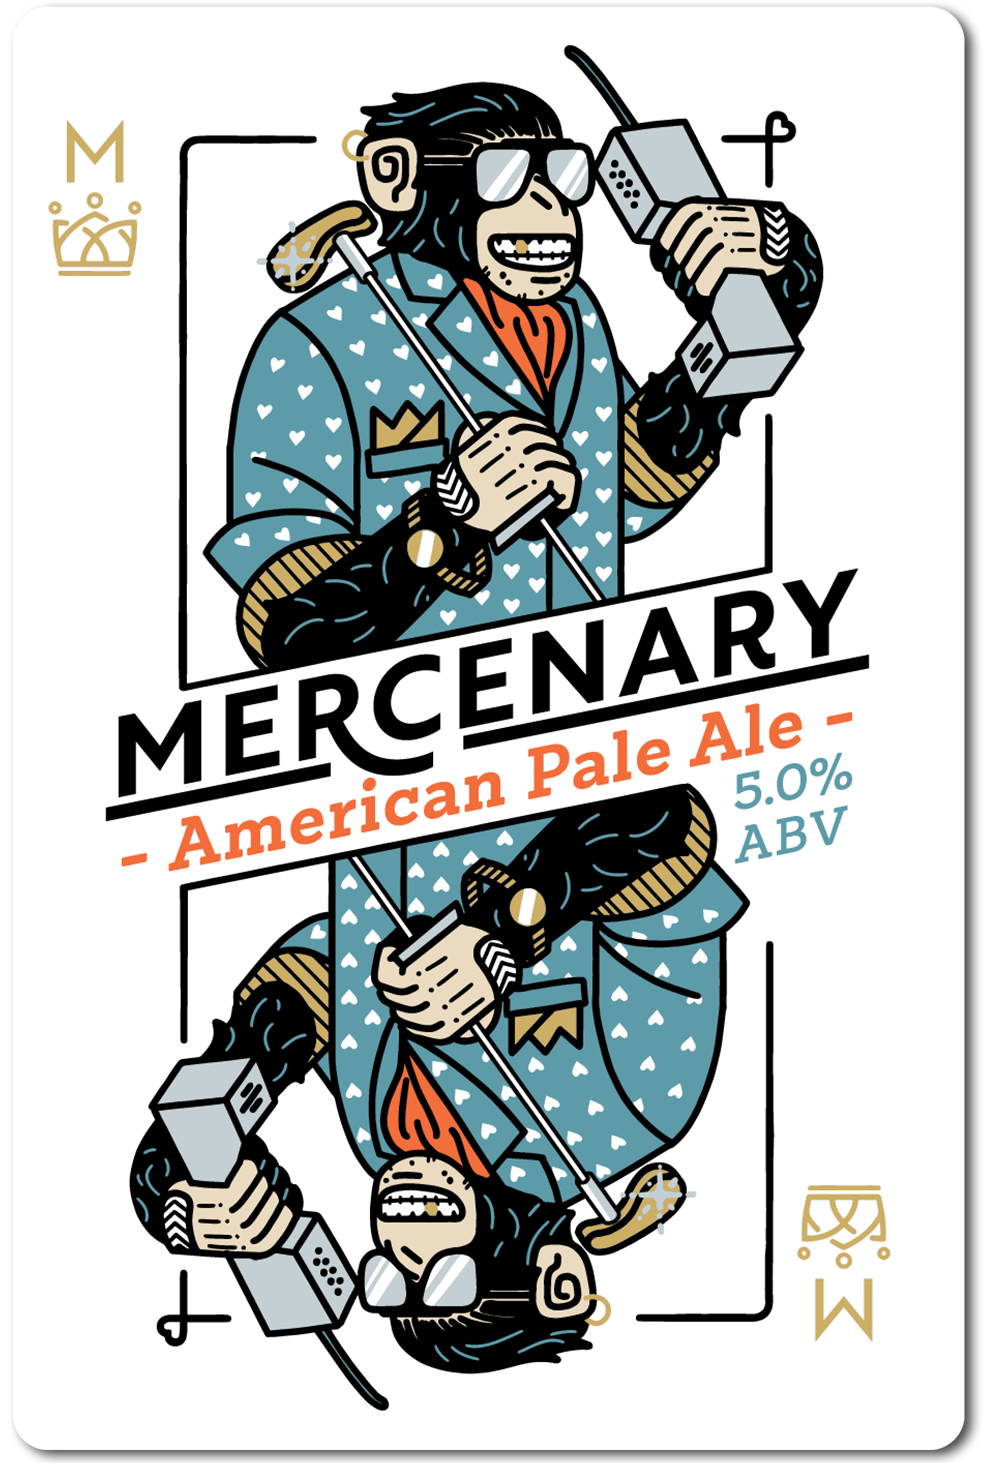 All in Brewing FWK  - Mercenary - American Pale Ale